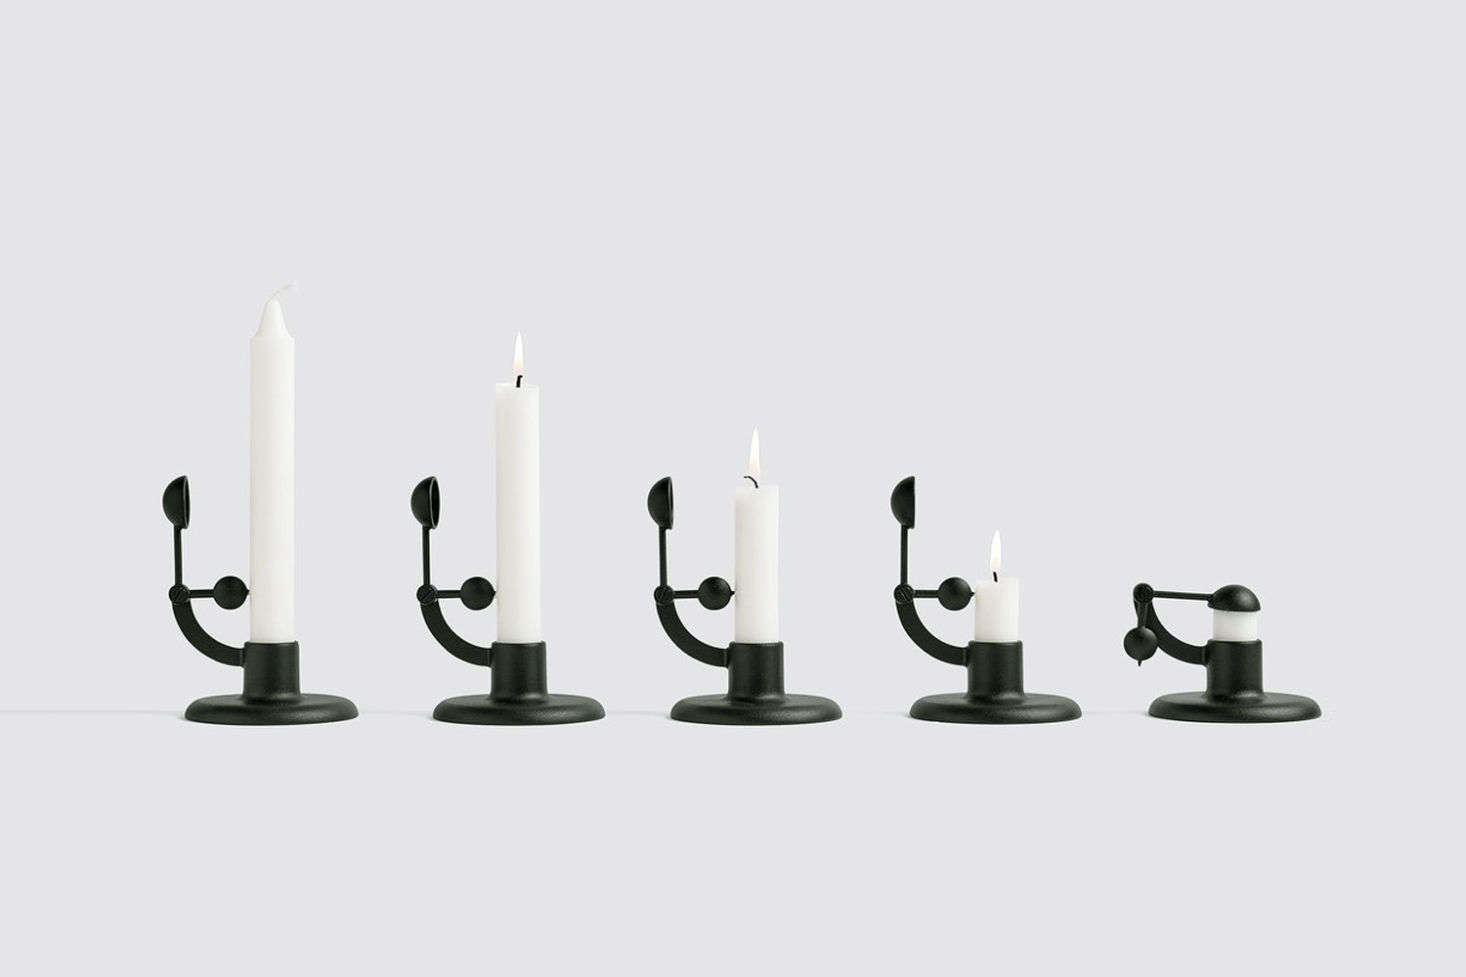 """The MoMA Design Store, yes, has a registry (and a roundup of picks called """"Modern Wedding Gifts,"""" for extra guidance.) Head there for art-y gifts and finds for the home, like this exclusive Hay Moment Candlestick Holder, $40, which we coveted inObject of Desire: A Self-Extinguishing Candlestick.An art print would also make a great gift."""